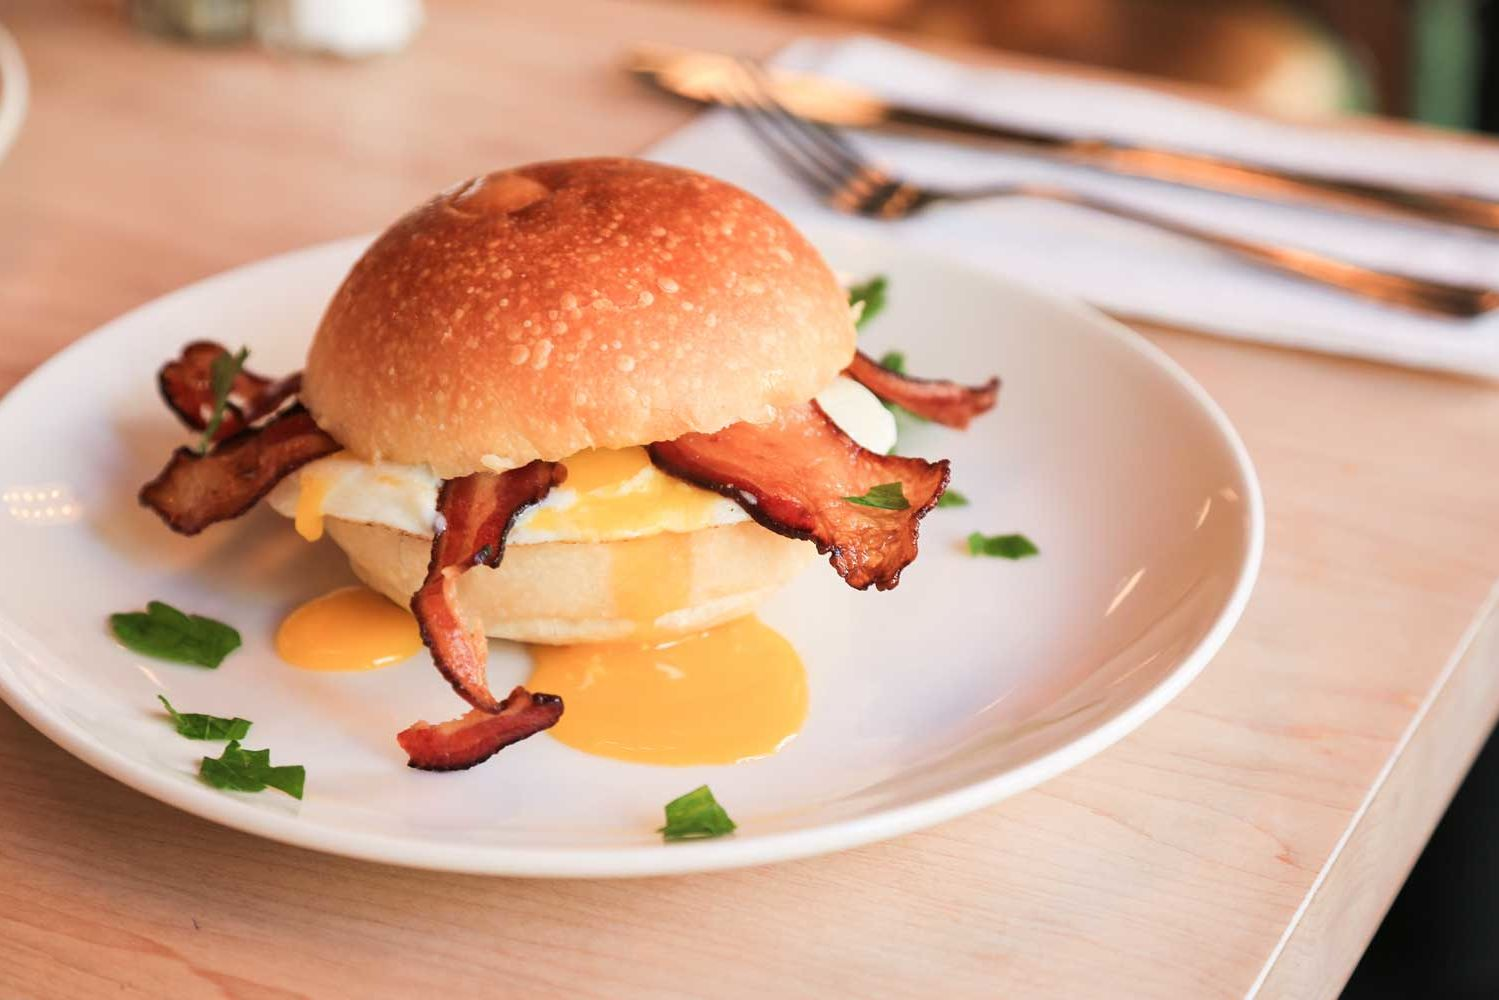 These Are the Most-Ordered Egg Dishes in America, According to Grubhub